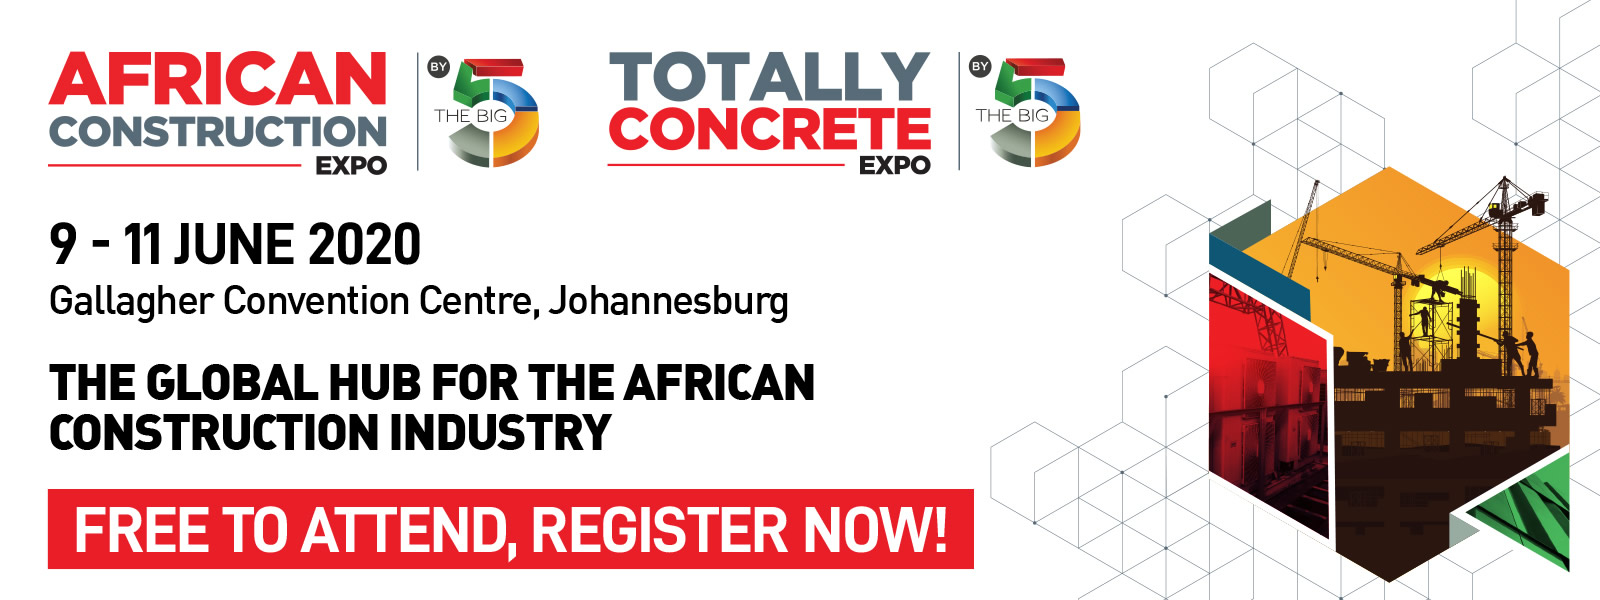 African Construction and Totally Concrete Expo 2020